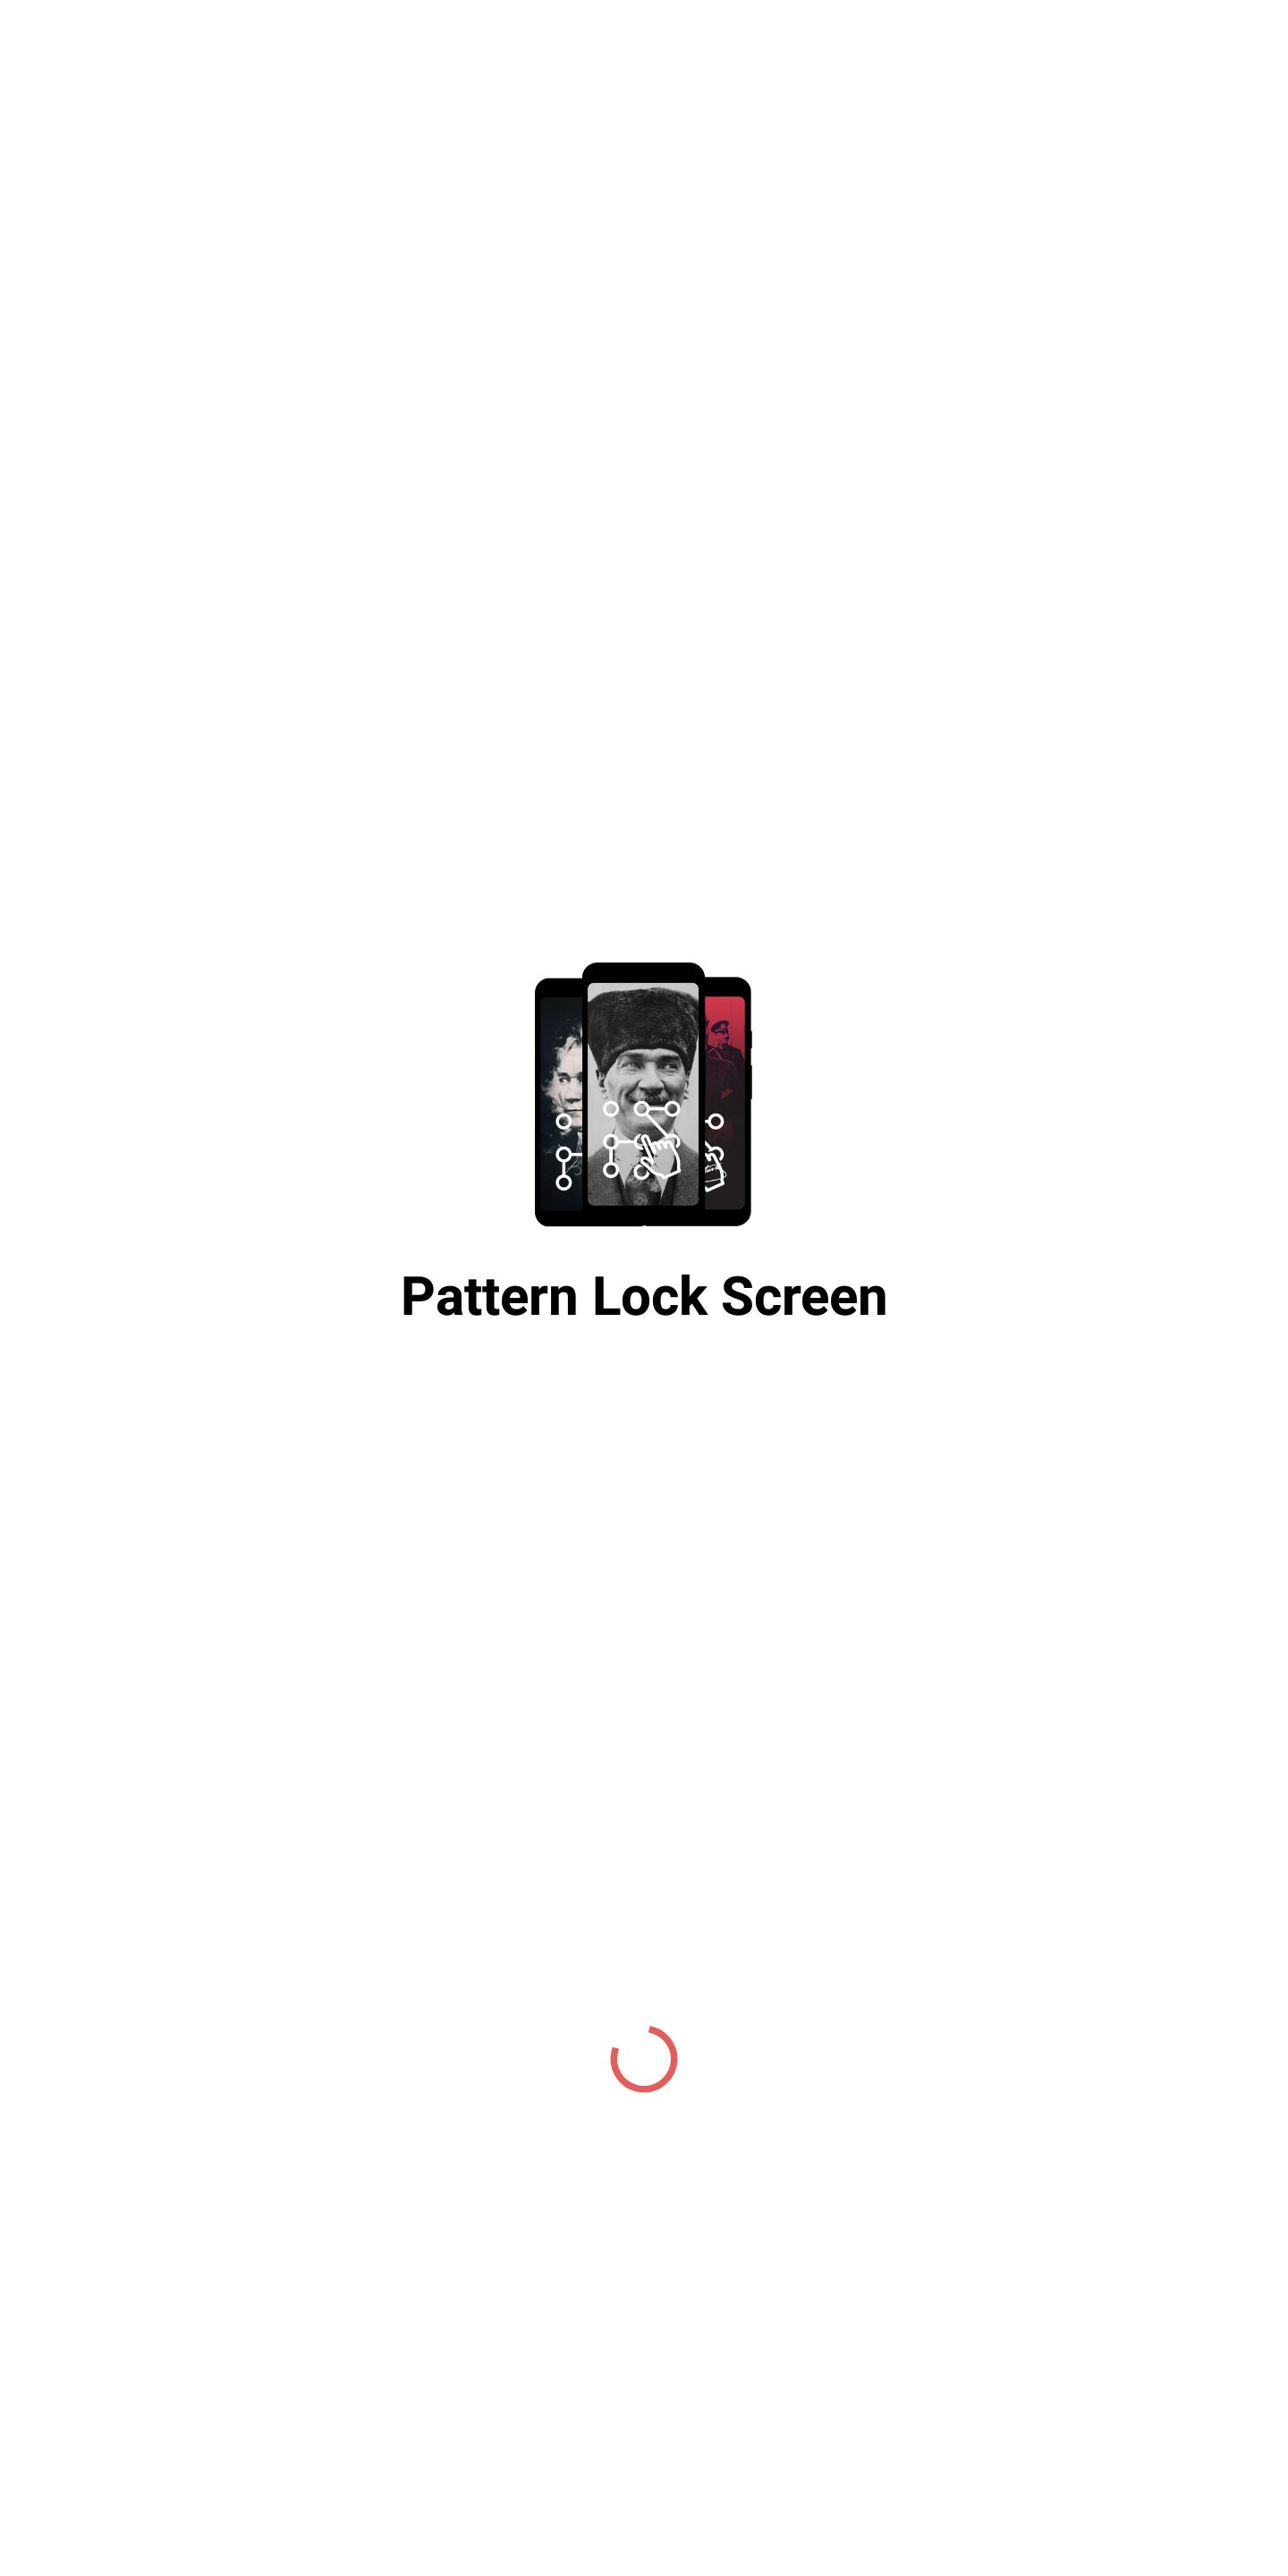 Pattern Lock Screen - Android Source Code Screenshot 1